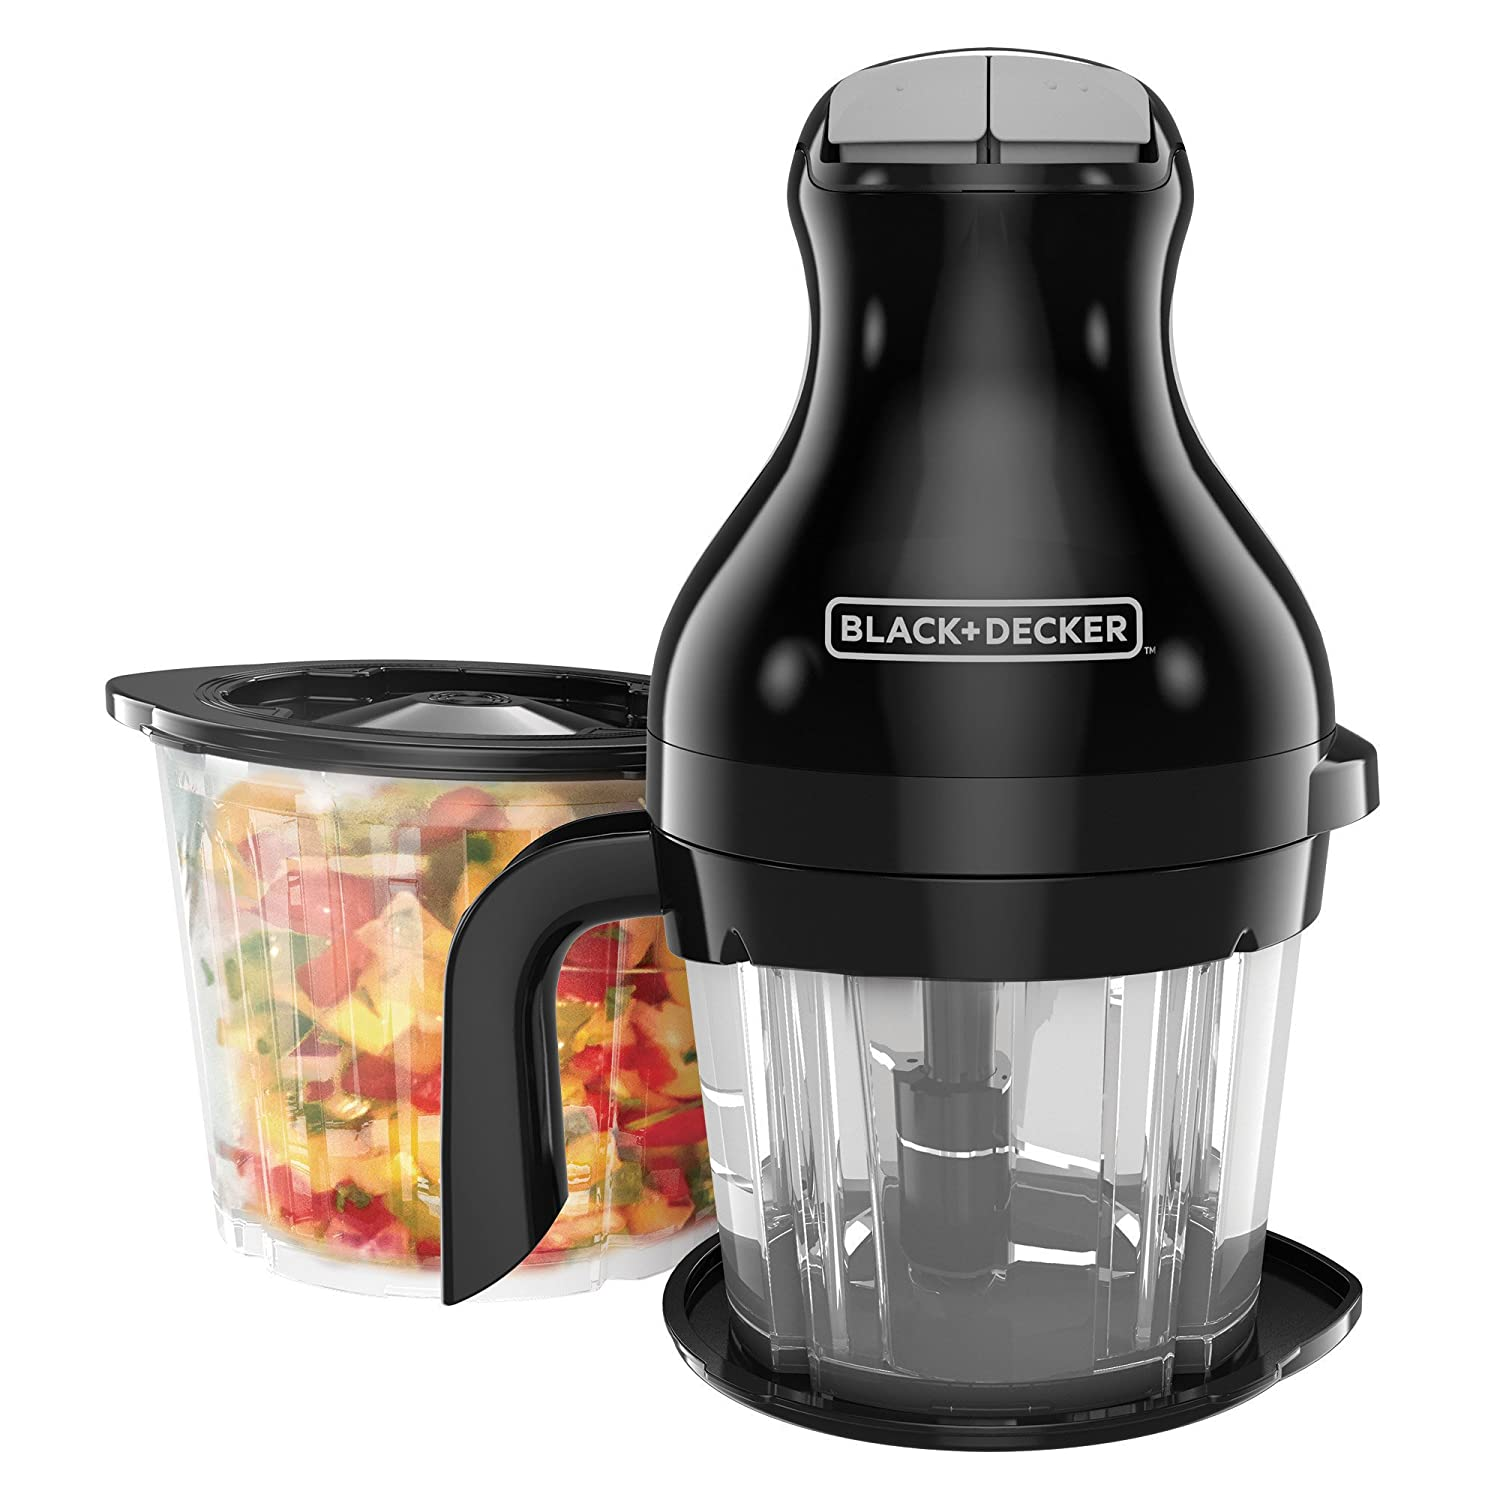 BLACK+DECKER Prep & Blend Multi-Chopper, Black, PS2000BD